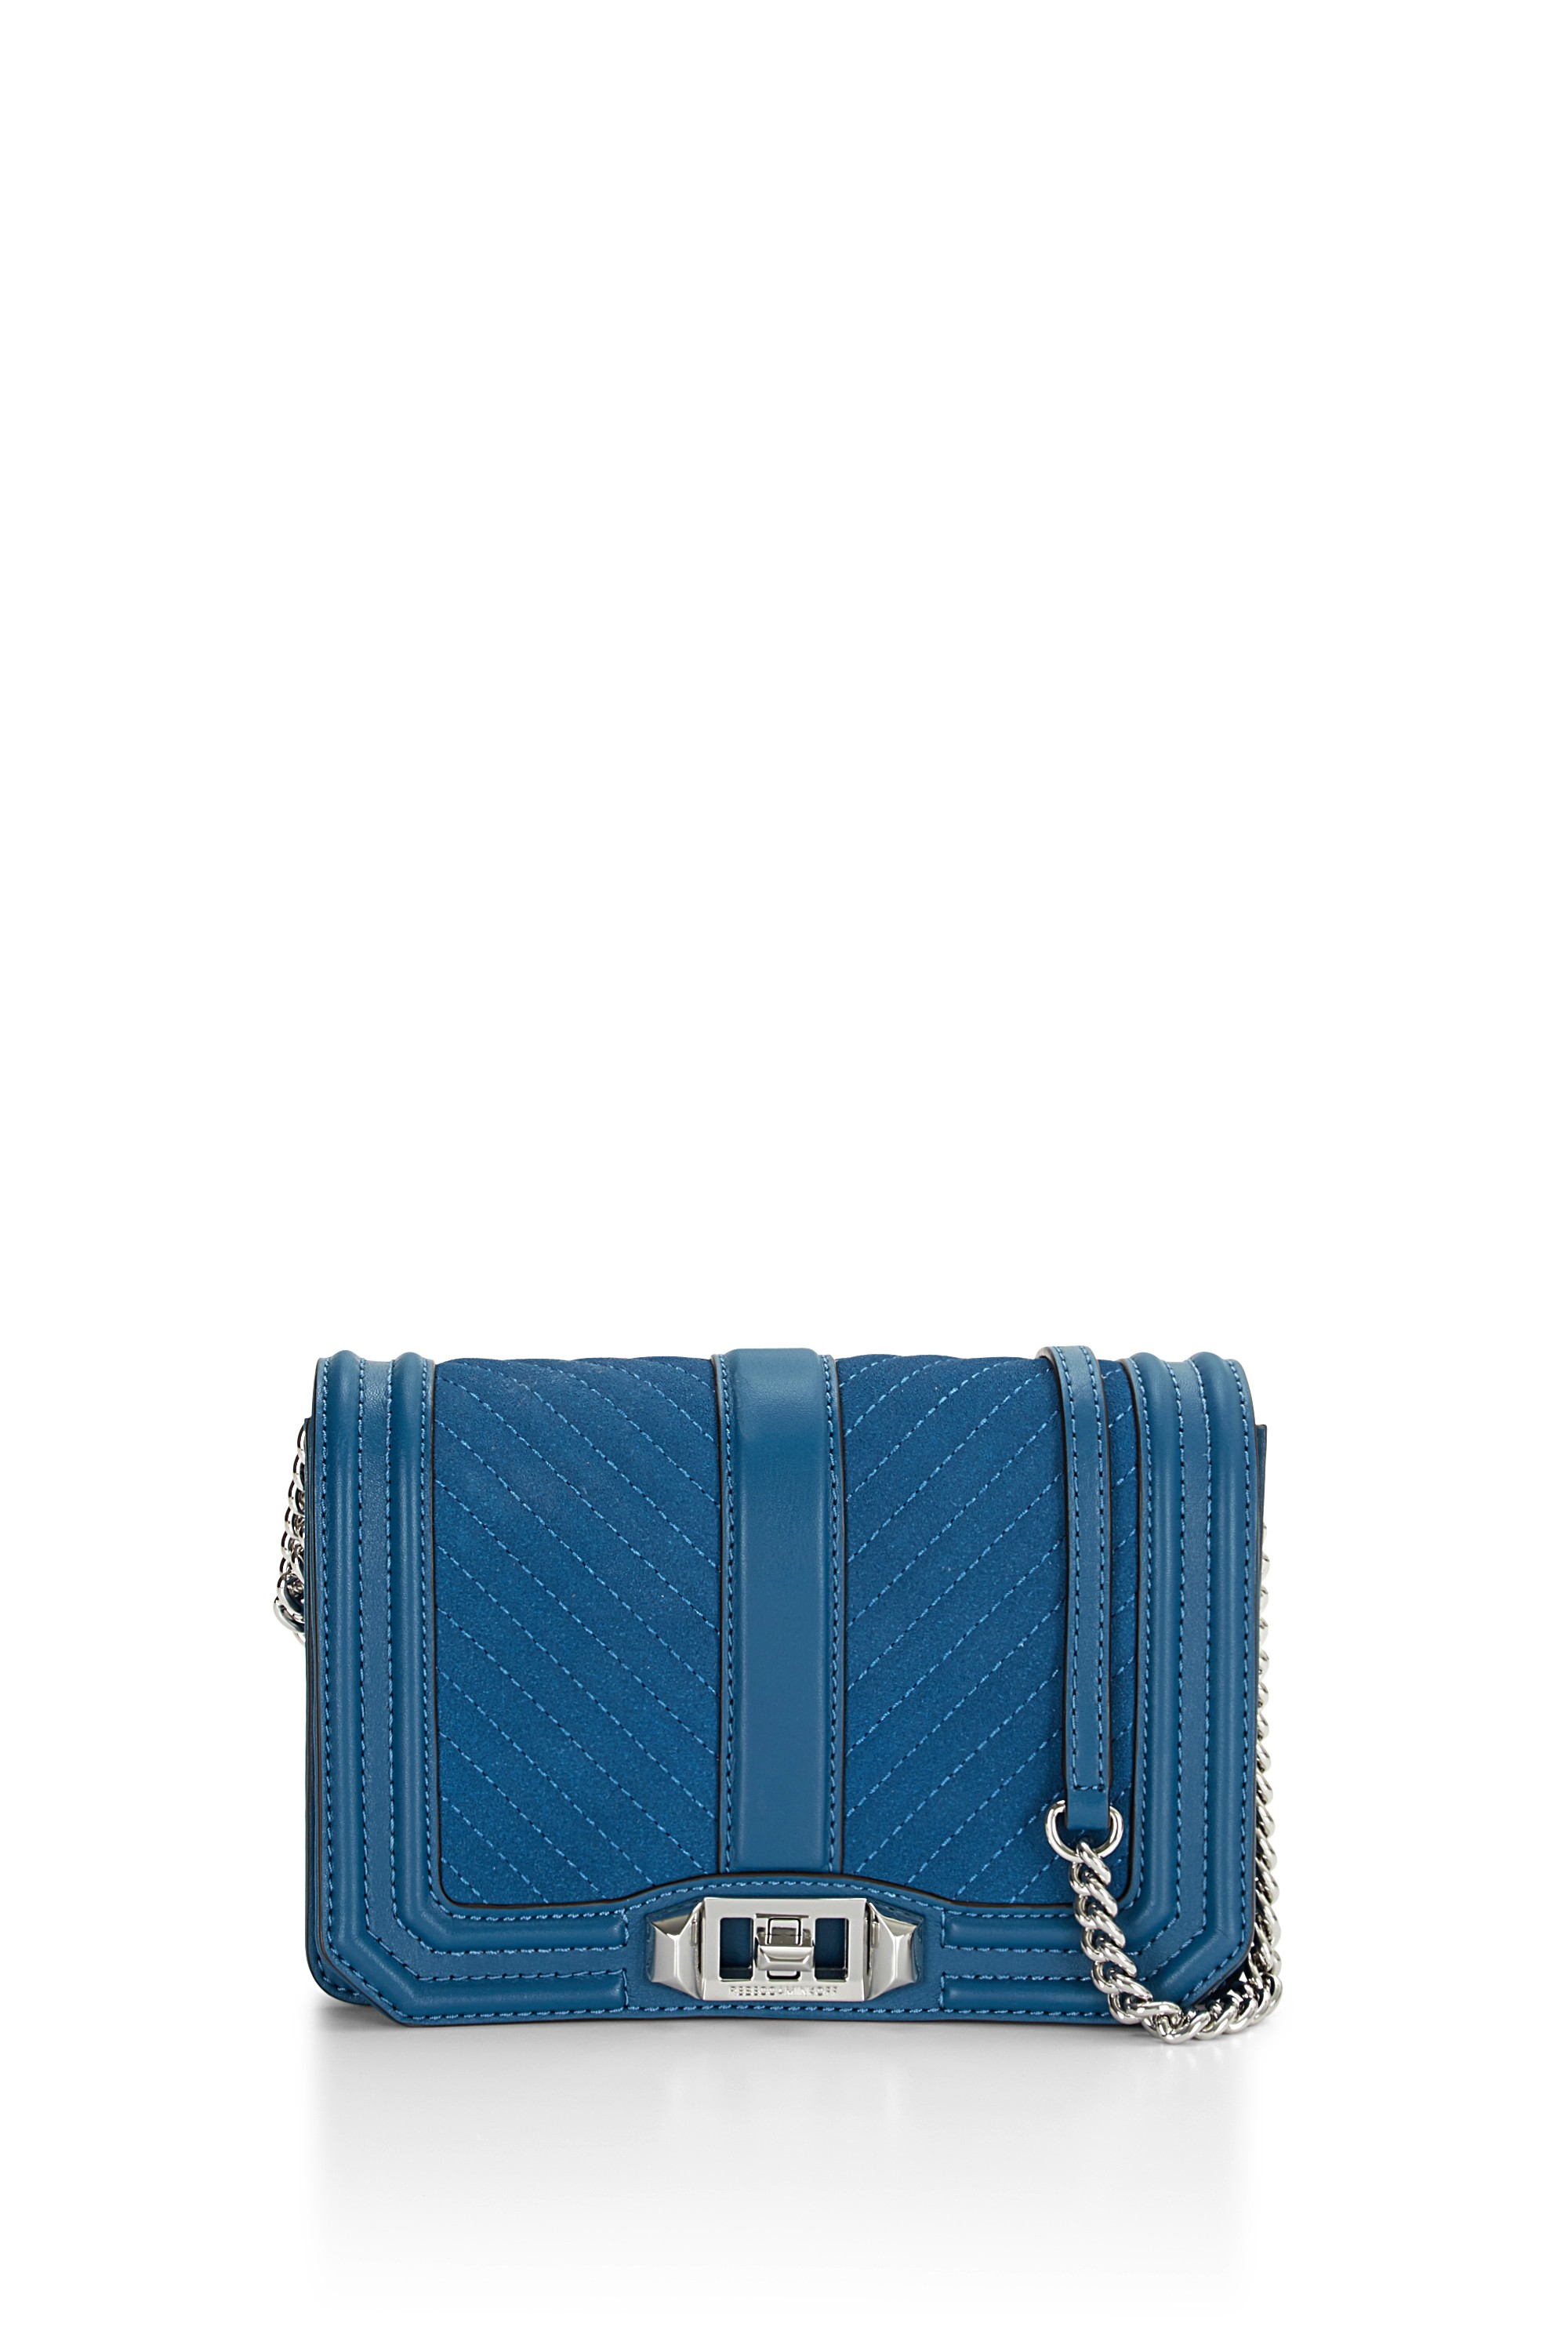 8c8b03e02 Rebecca Minkoff Small Love Chevron Quilted Leather Crossbody Bag In Lake  Blue